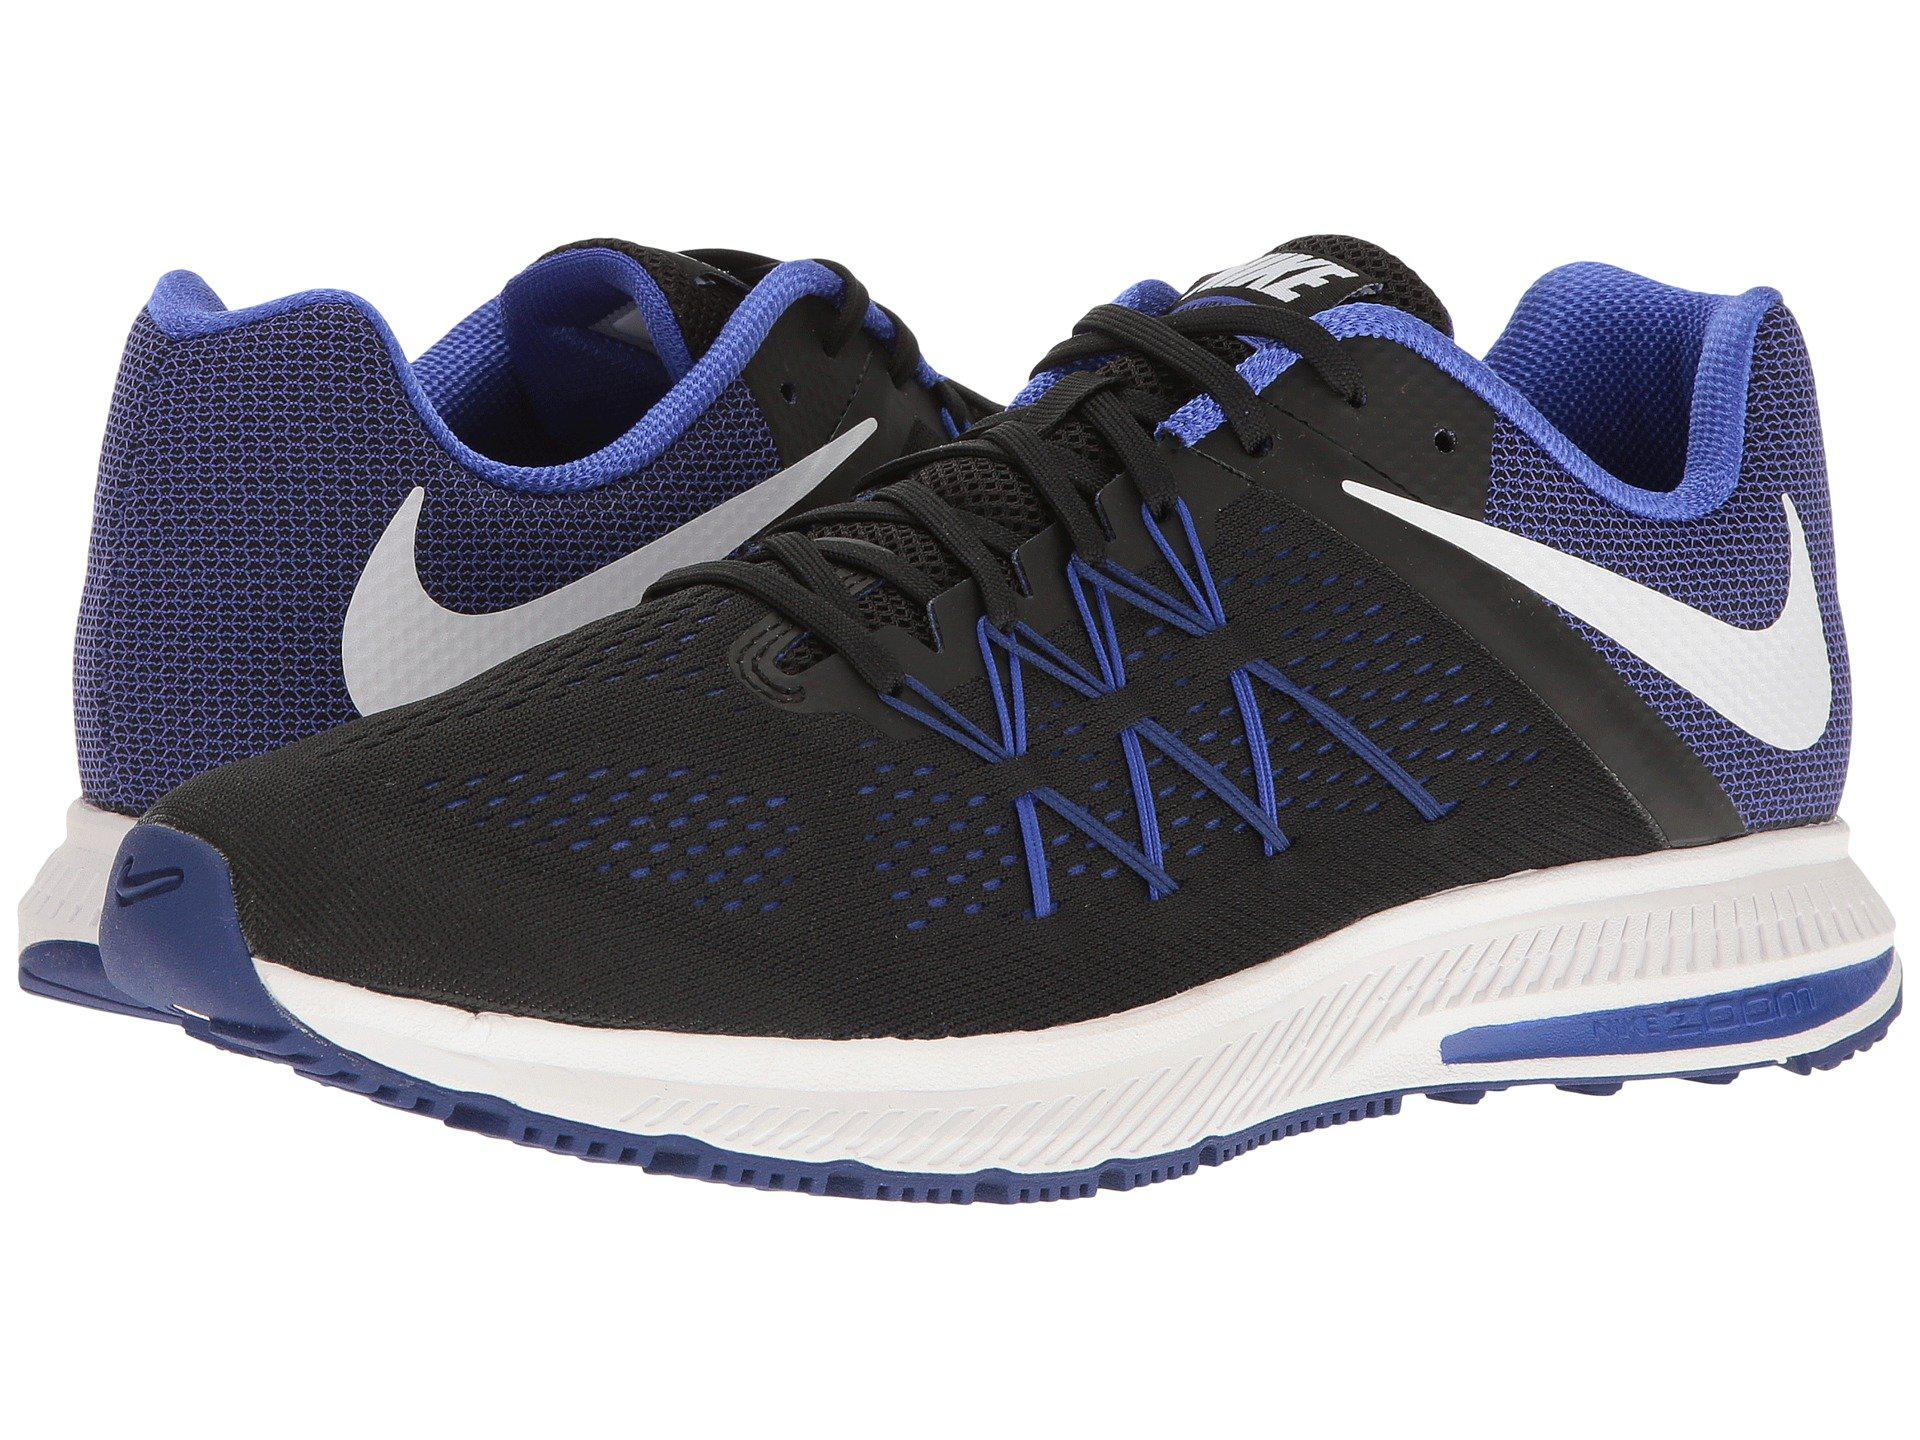 sports shoes 3a6d4 9db06 ... ireland lyst nike zoom winflo 3 in blue for men . 64b40 3a109 closeout  womens ...